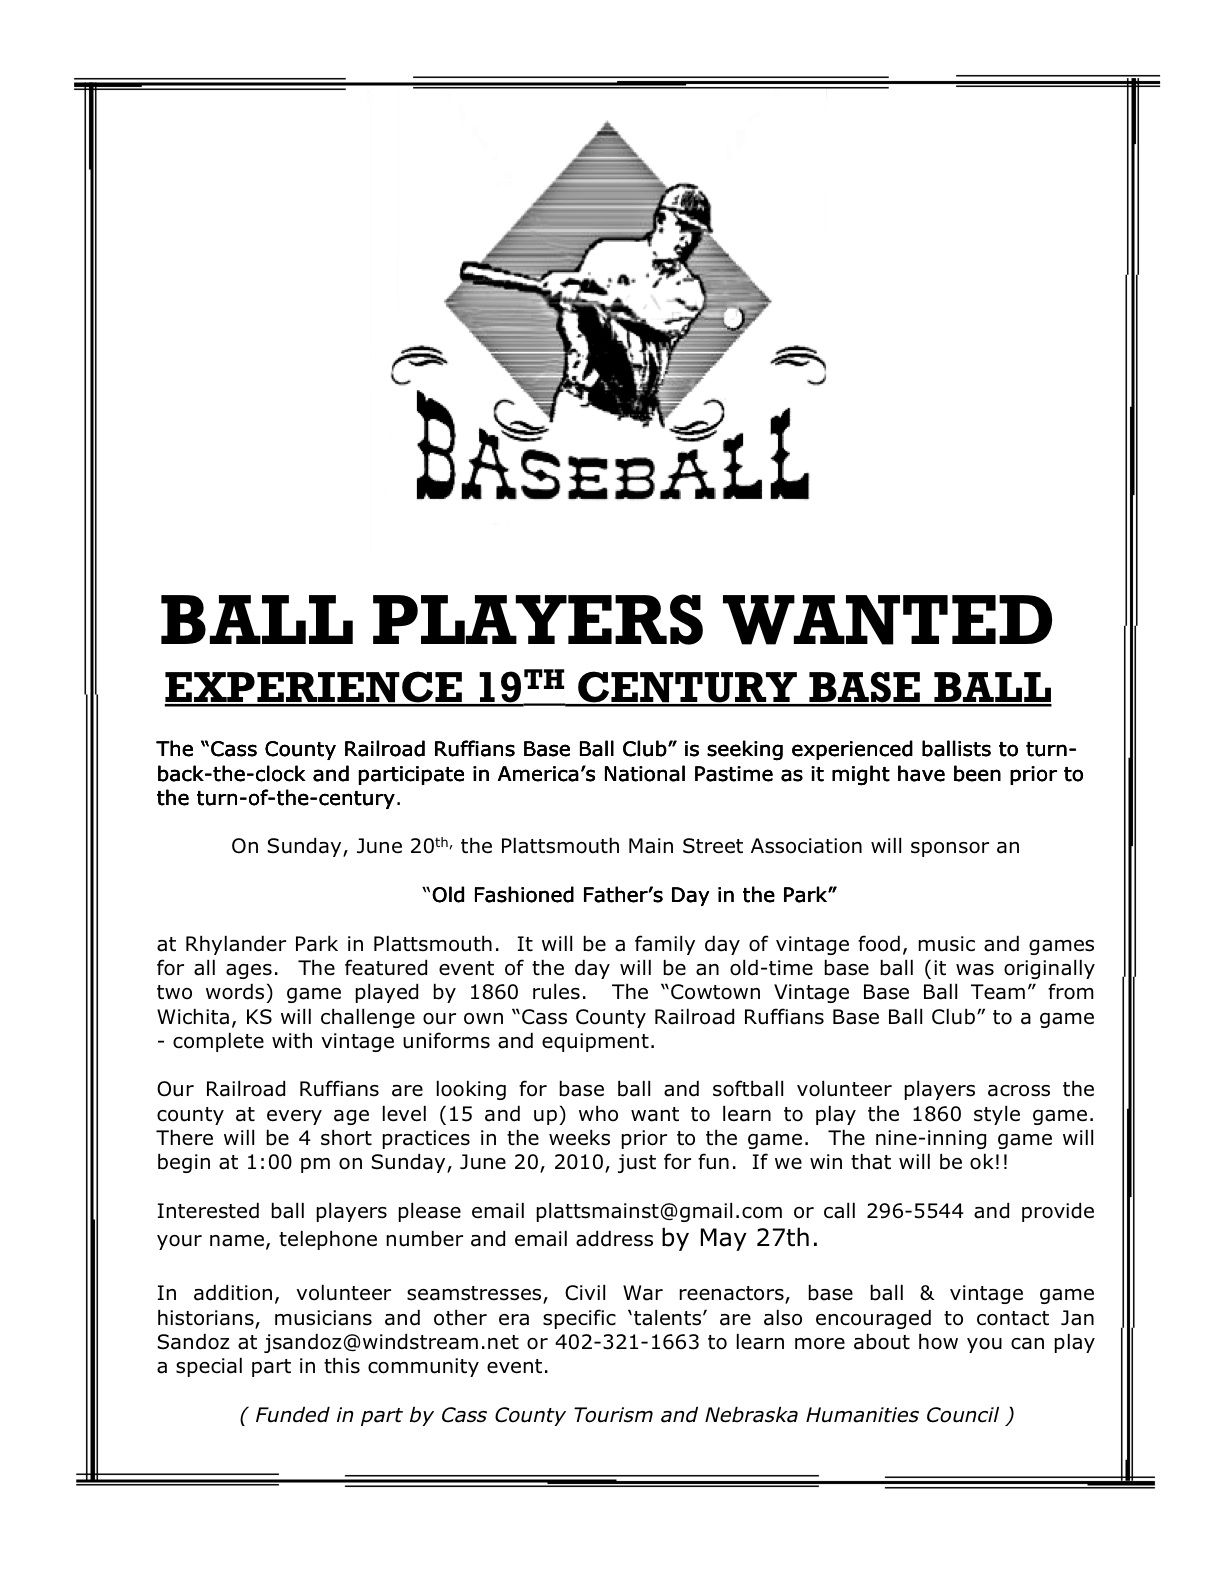 ball_players_wanted_flyer2.jpg